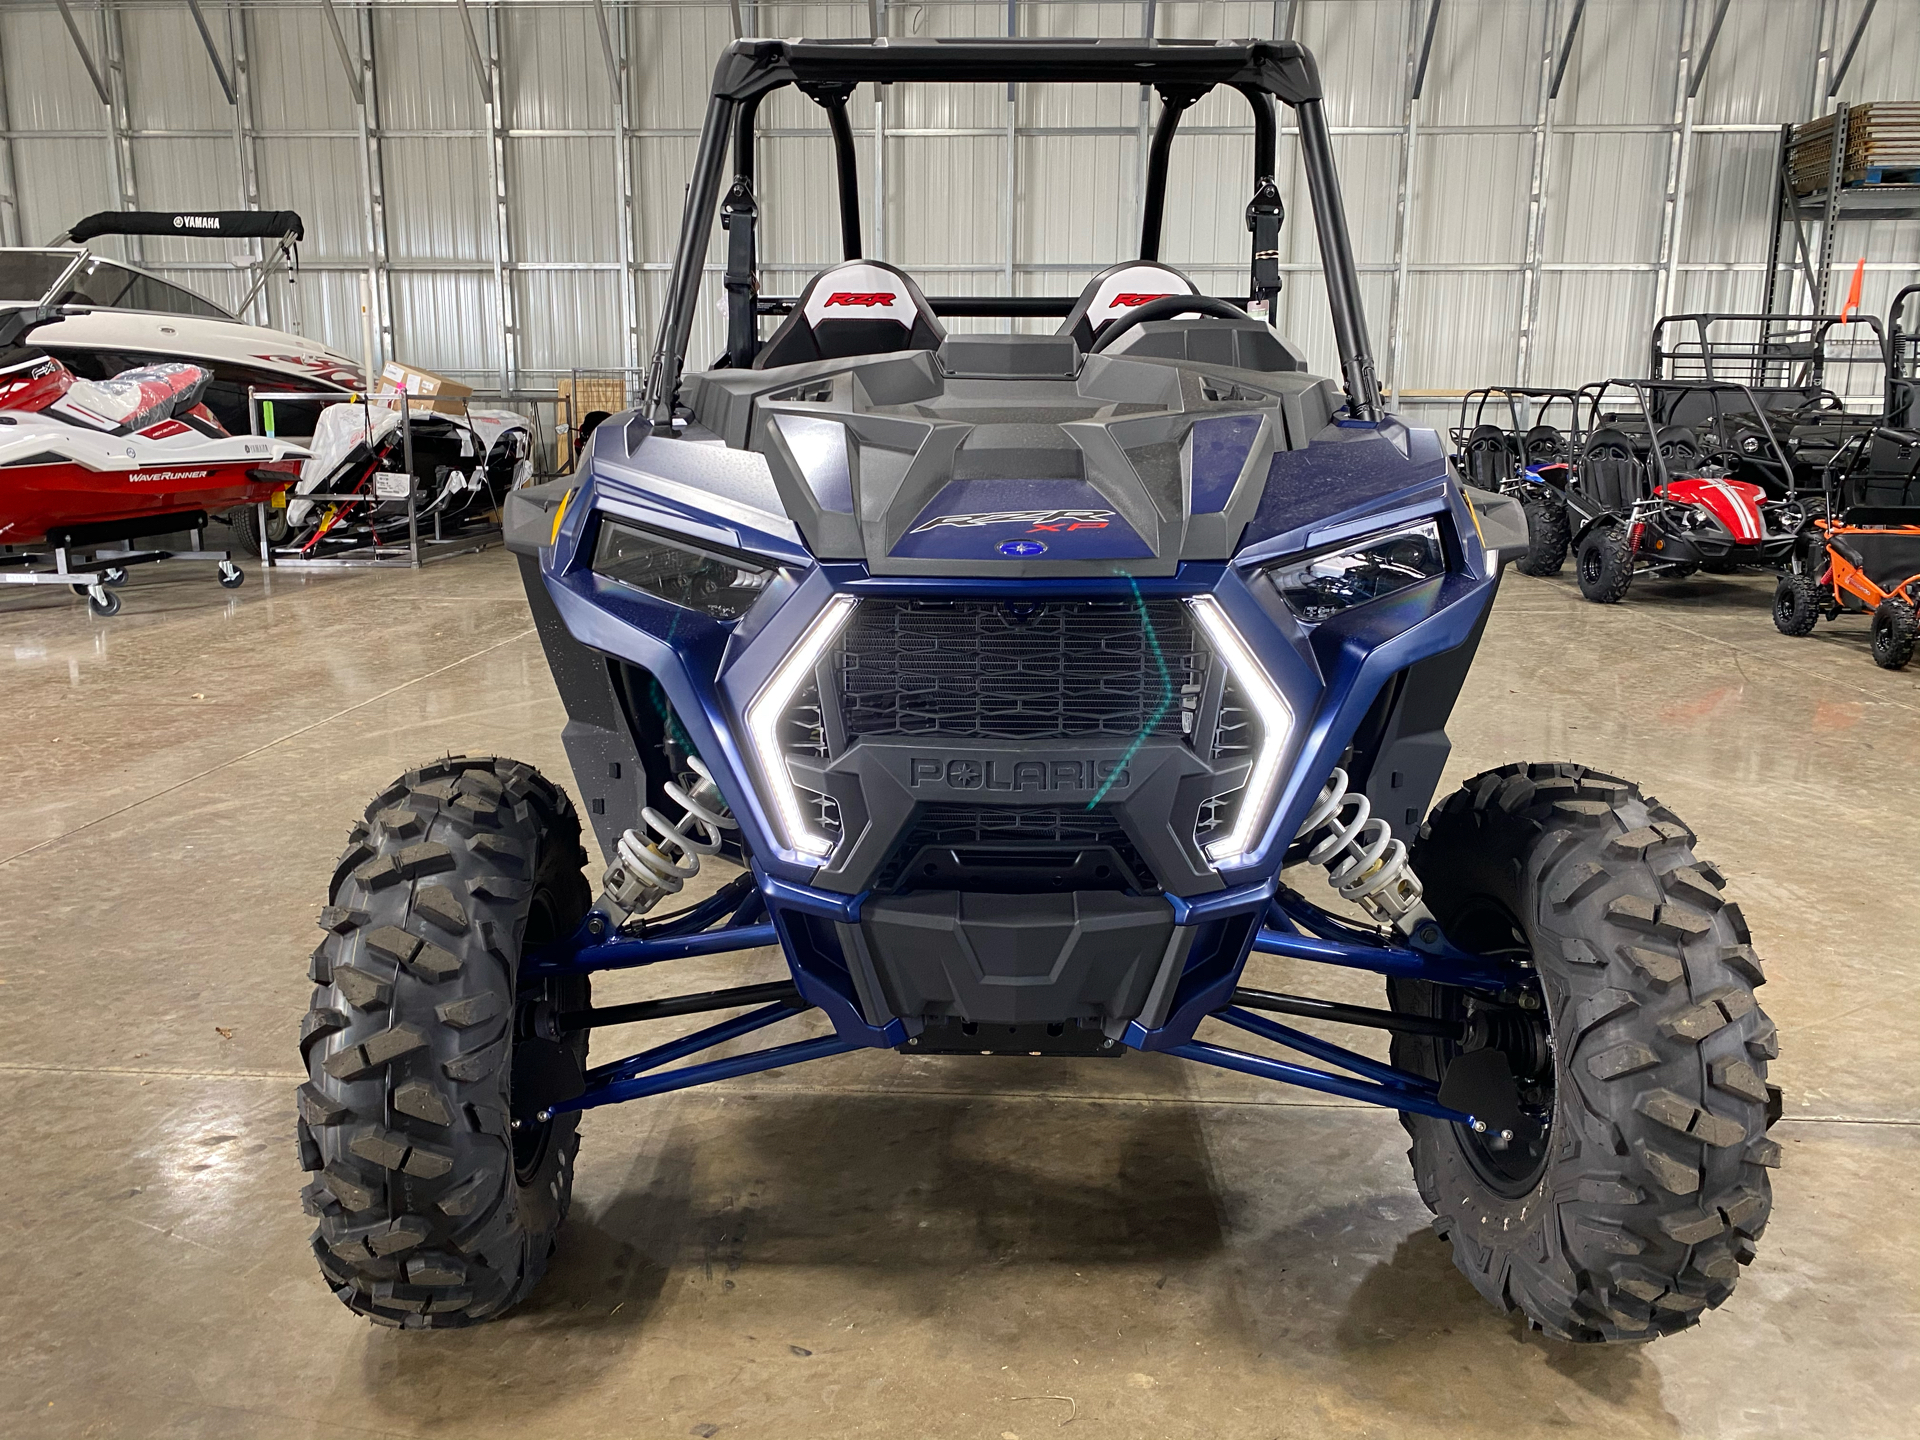 2021 Polaris RZR XP 1000 Premium in Statesville, North Carolina - Photo 2